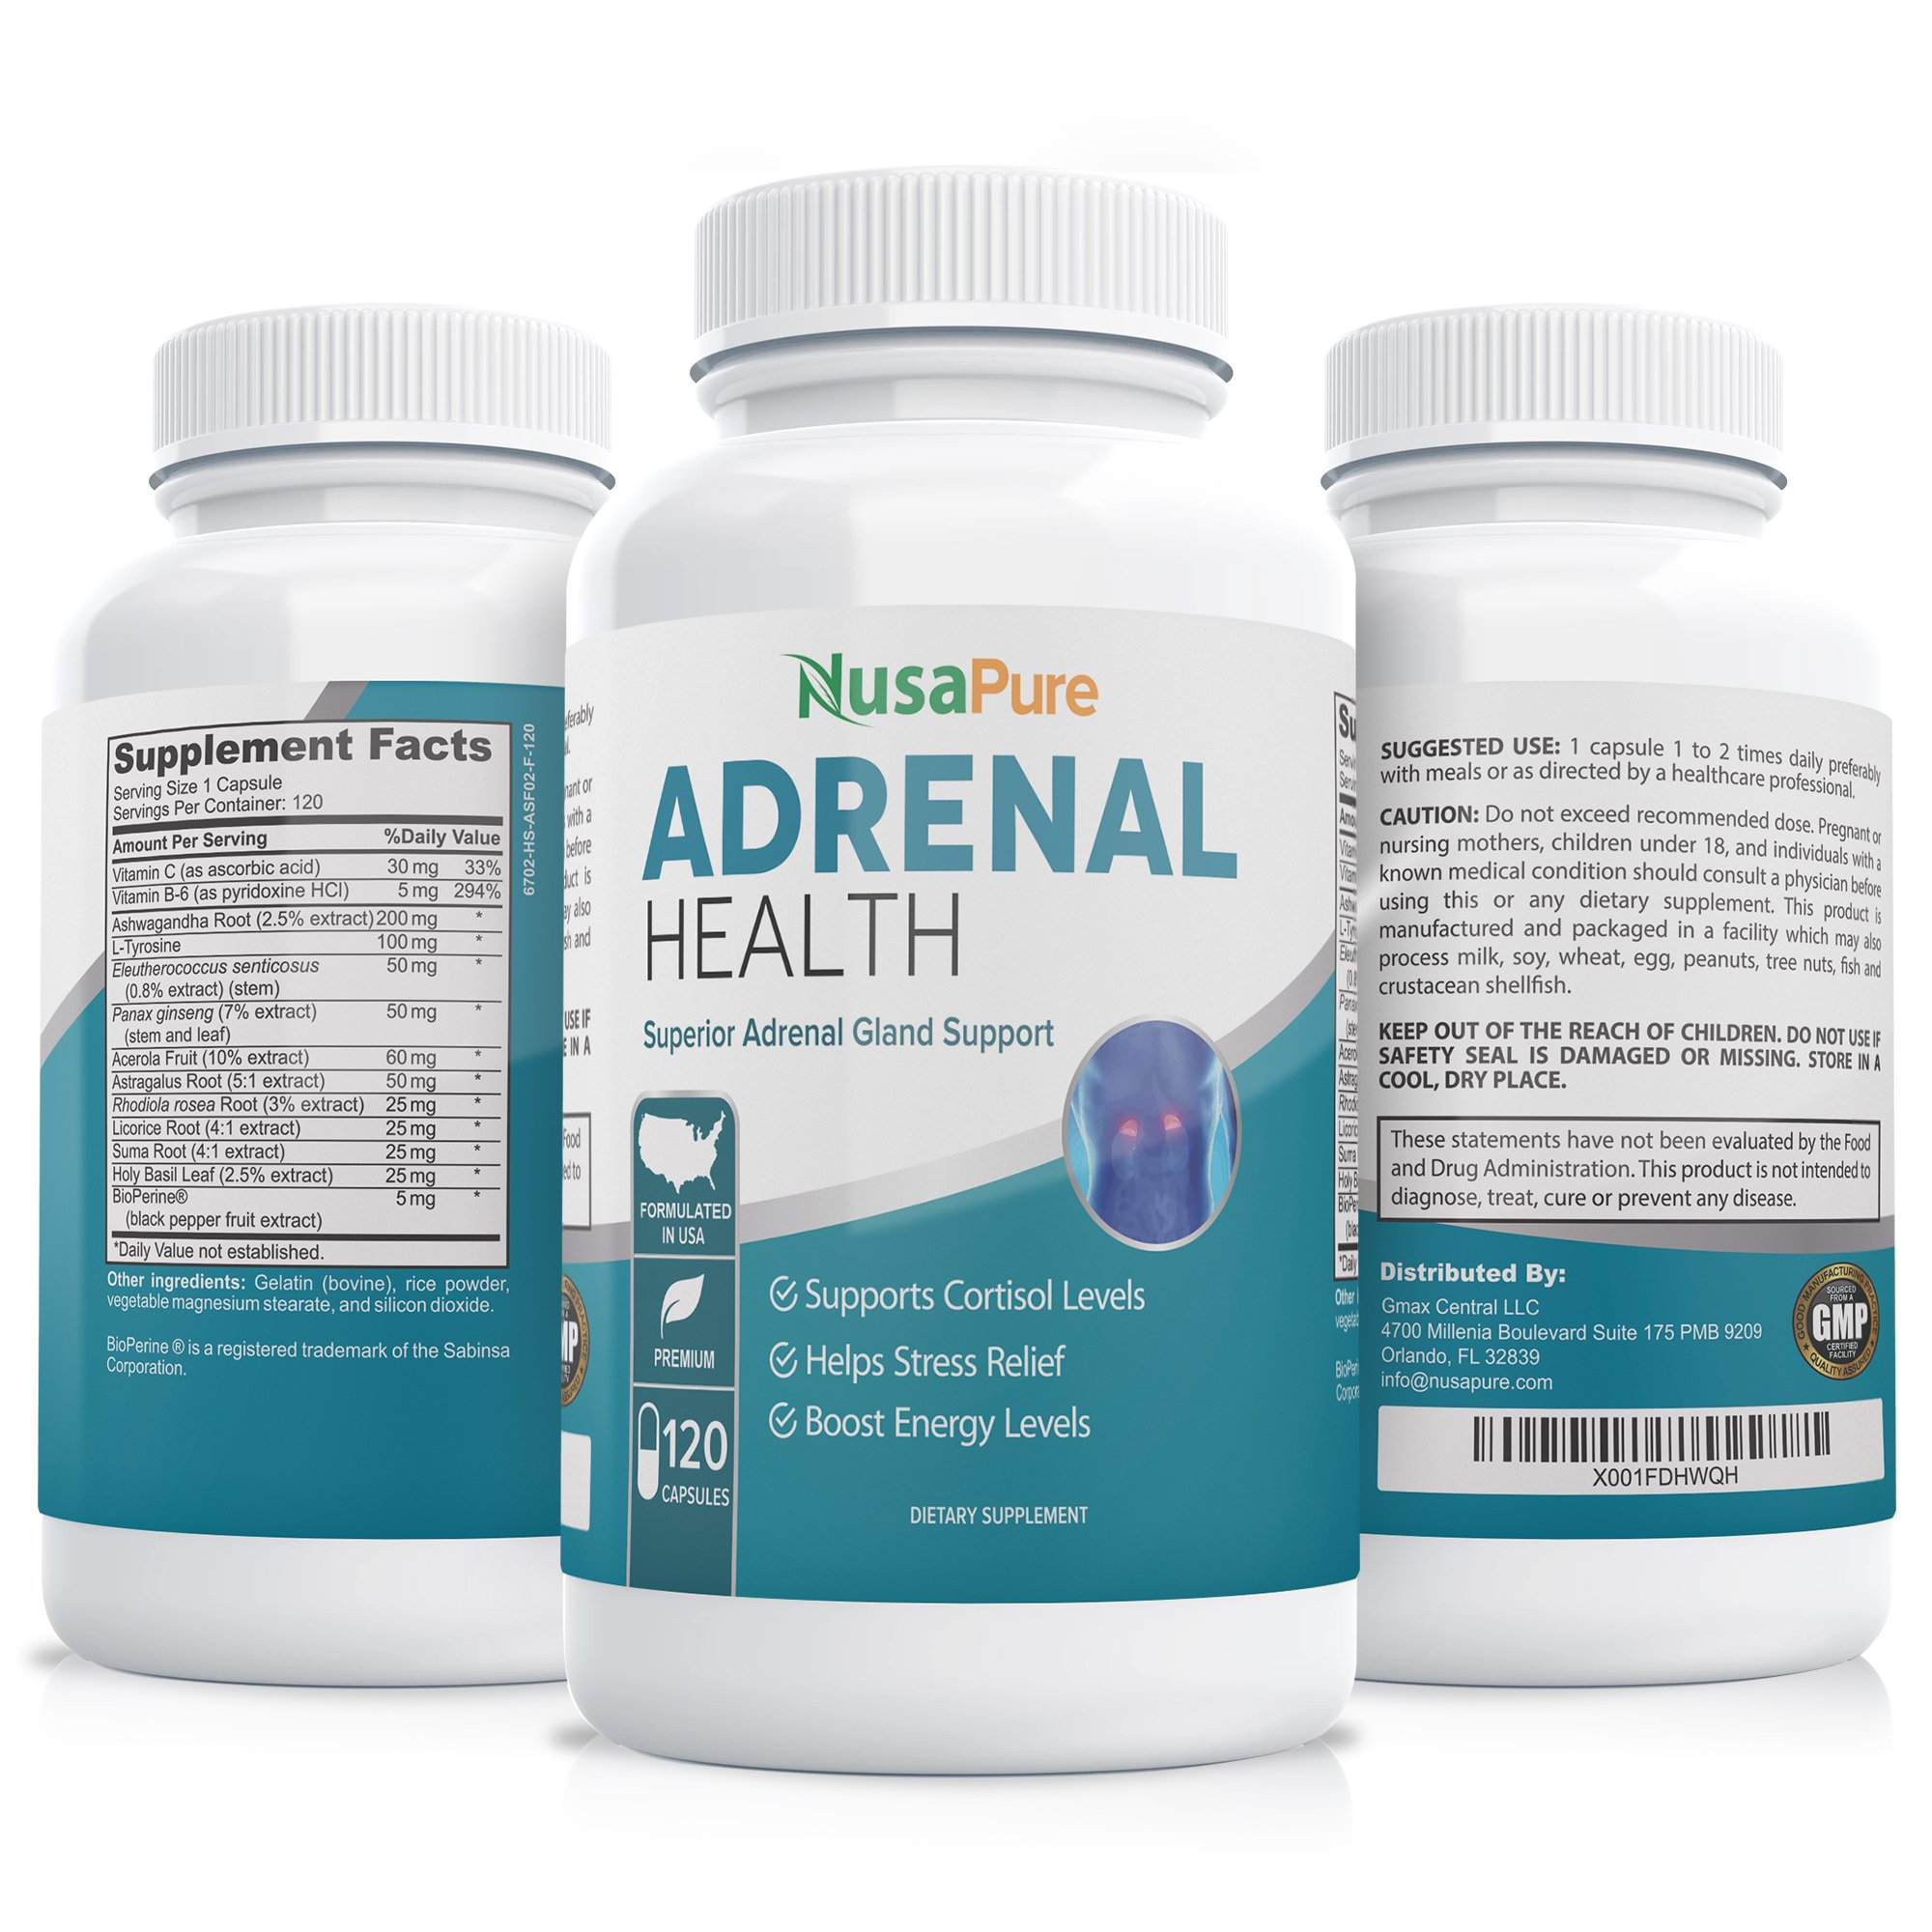 Adrenal Support with Bioperine- 120 capsules - With Ashwagandha Root, L-Tyrosine.